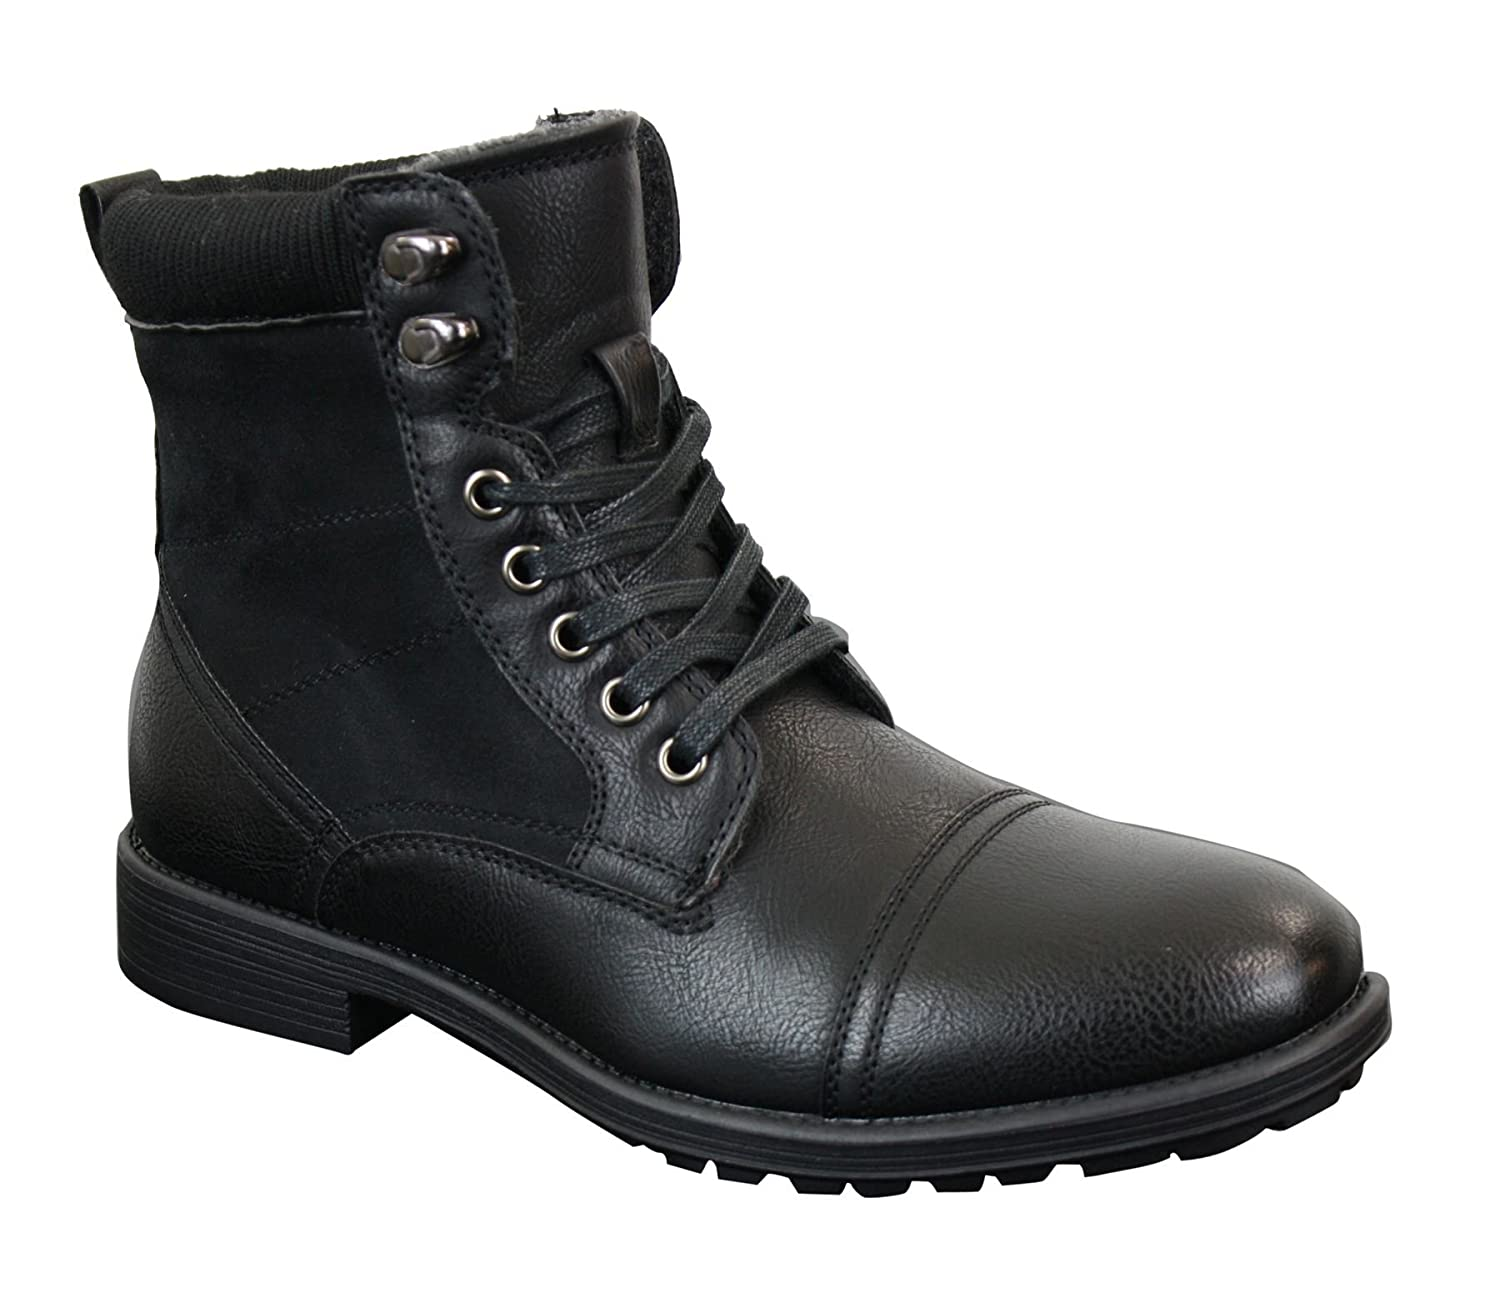 8e3d590d3e9 Mens Leather Suede PU Fleece Army Combat Military Ankle Boots Black Brown  Retro